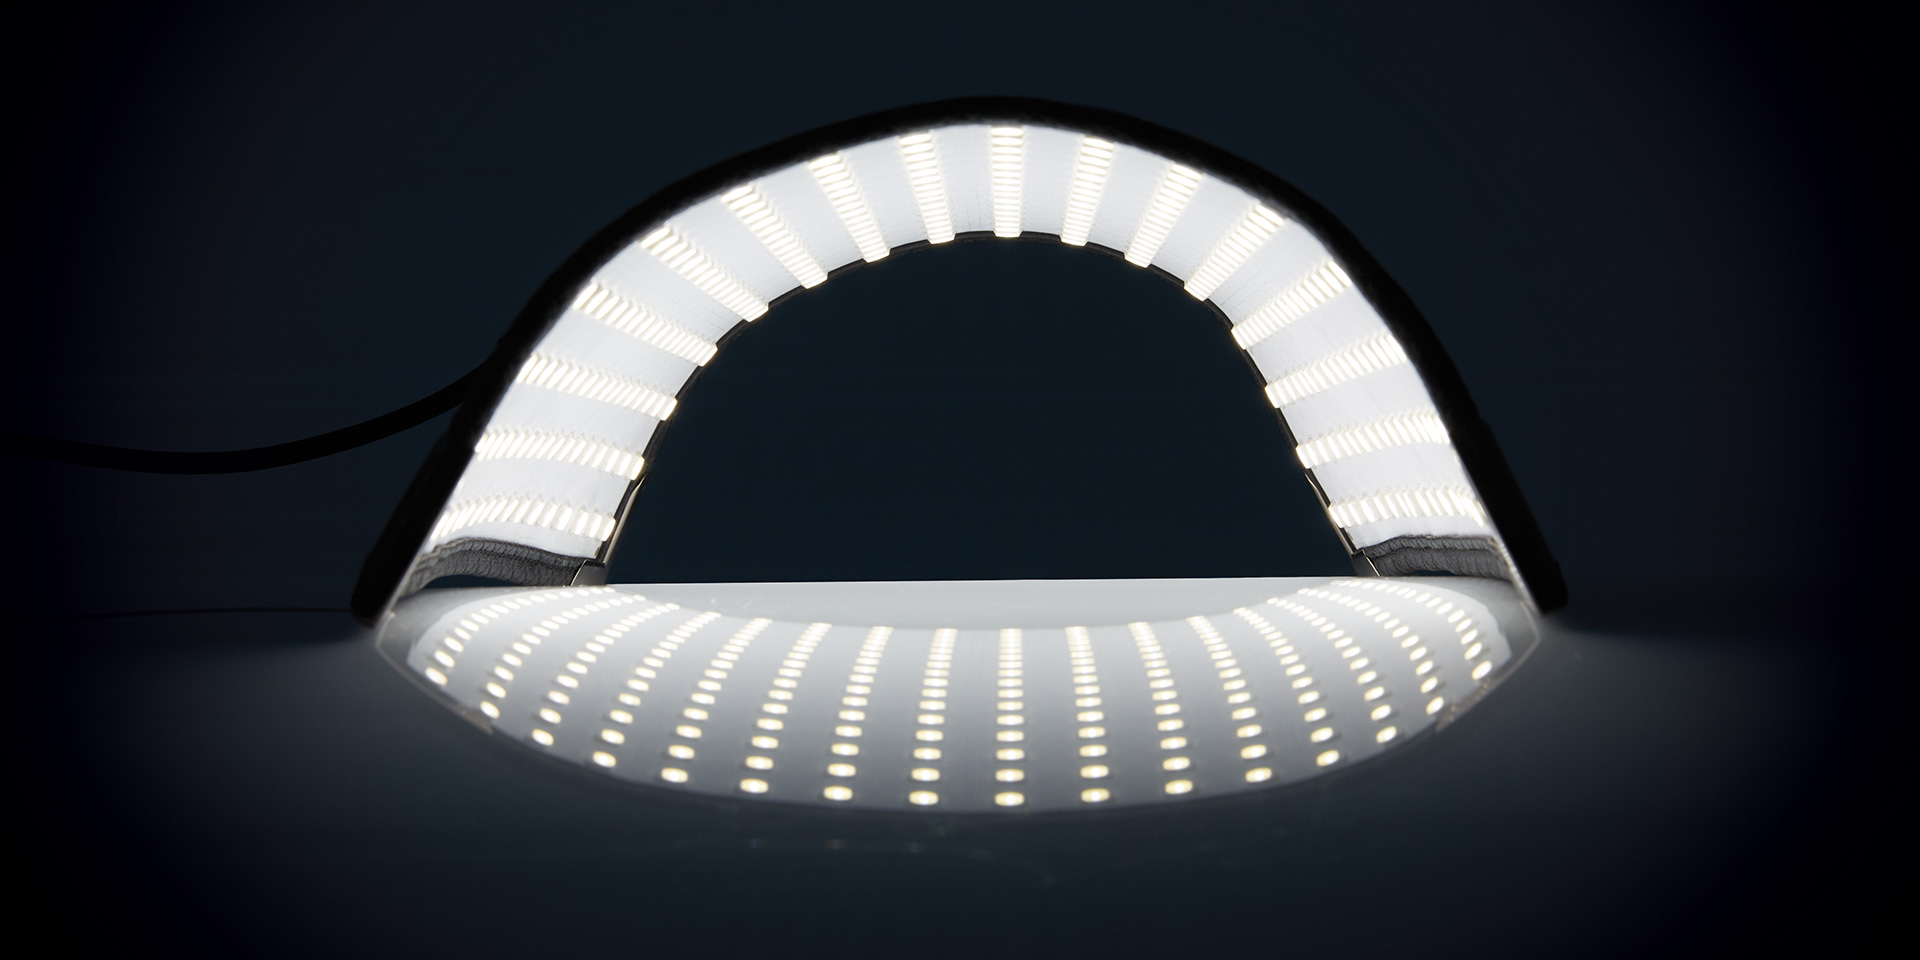 Flexible LED Mats for Photography and Filmmaking